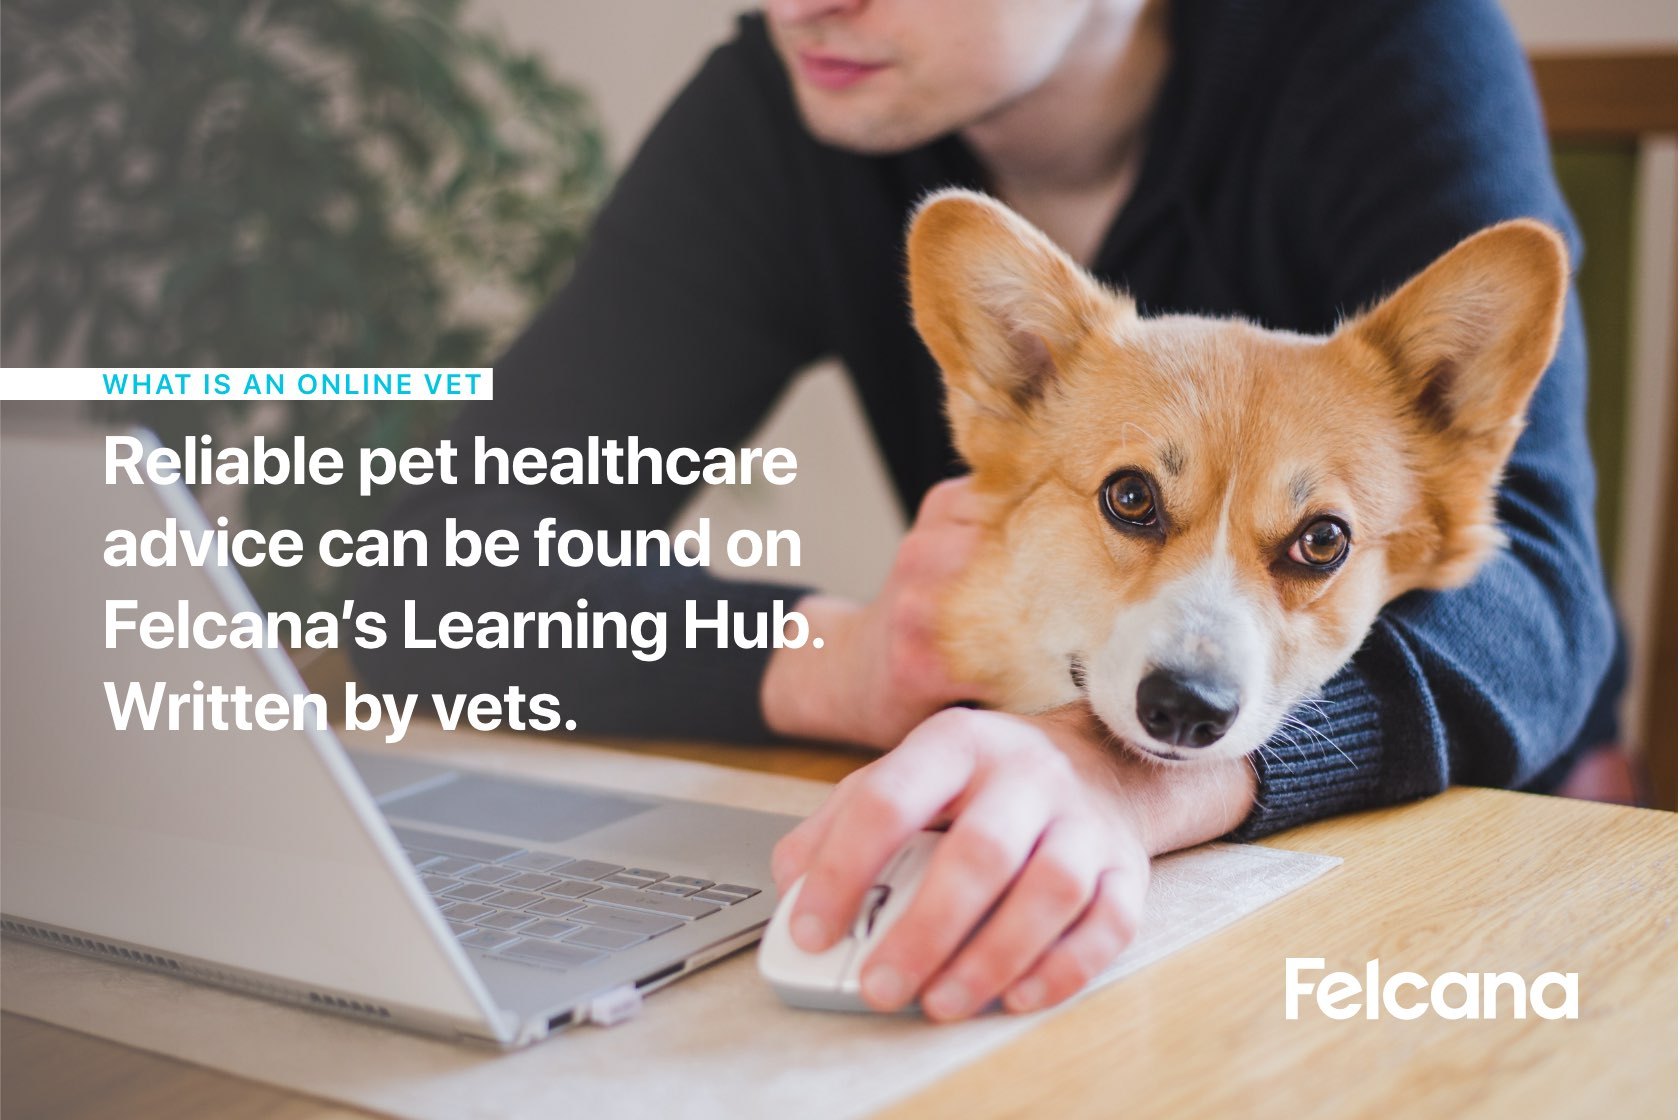 Corgi sitting on owner's lap and leaning on their wrist, while owner uses the computer to search for online vet articles